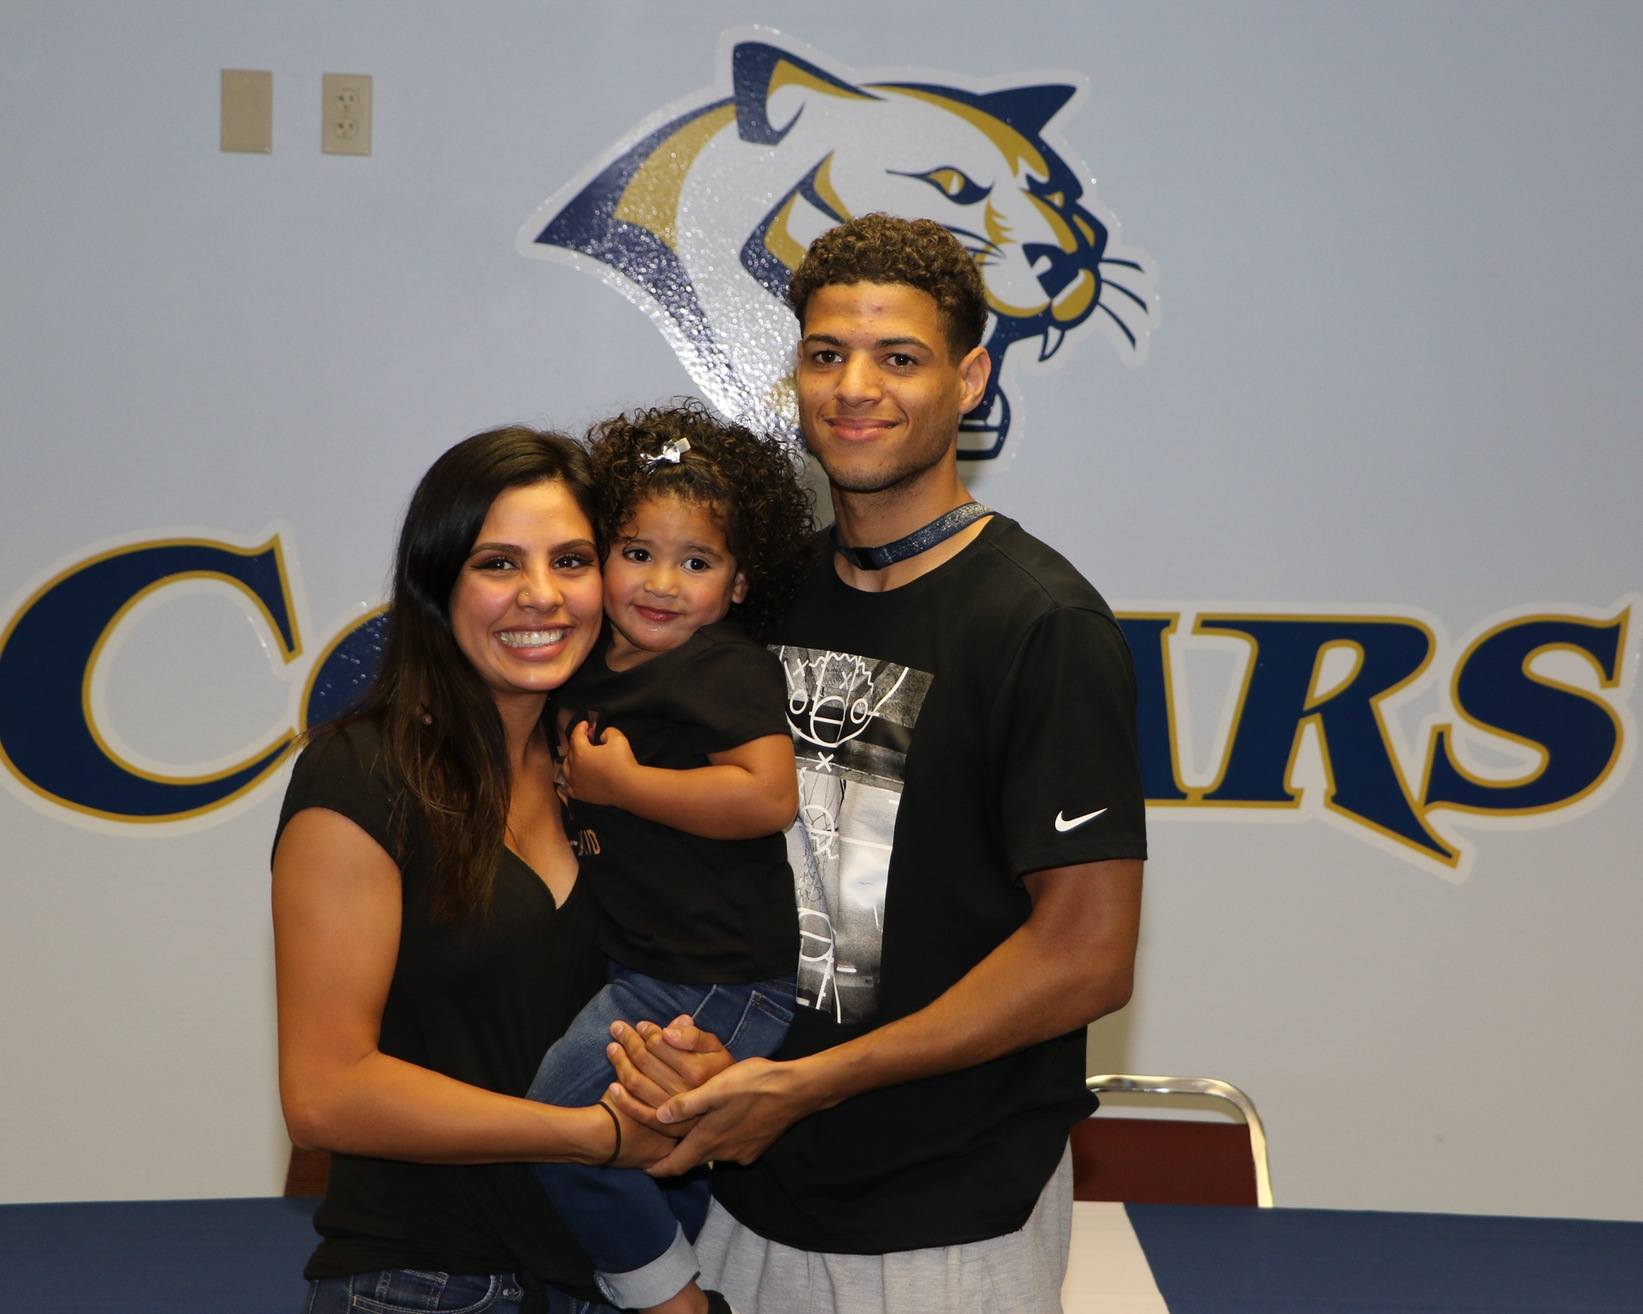 WNCC's Harris headed to University of Northern Colorado